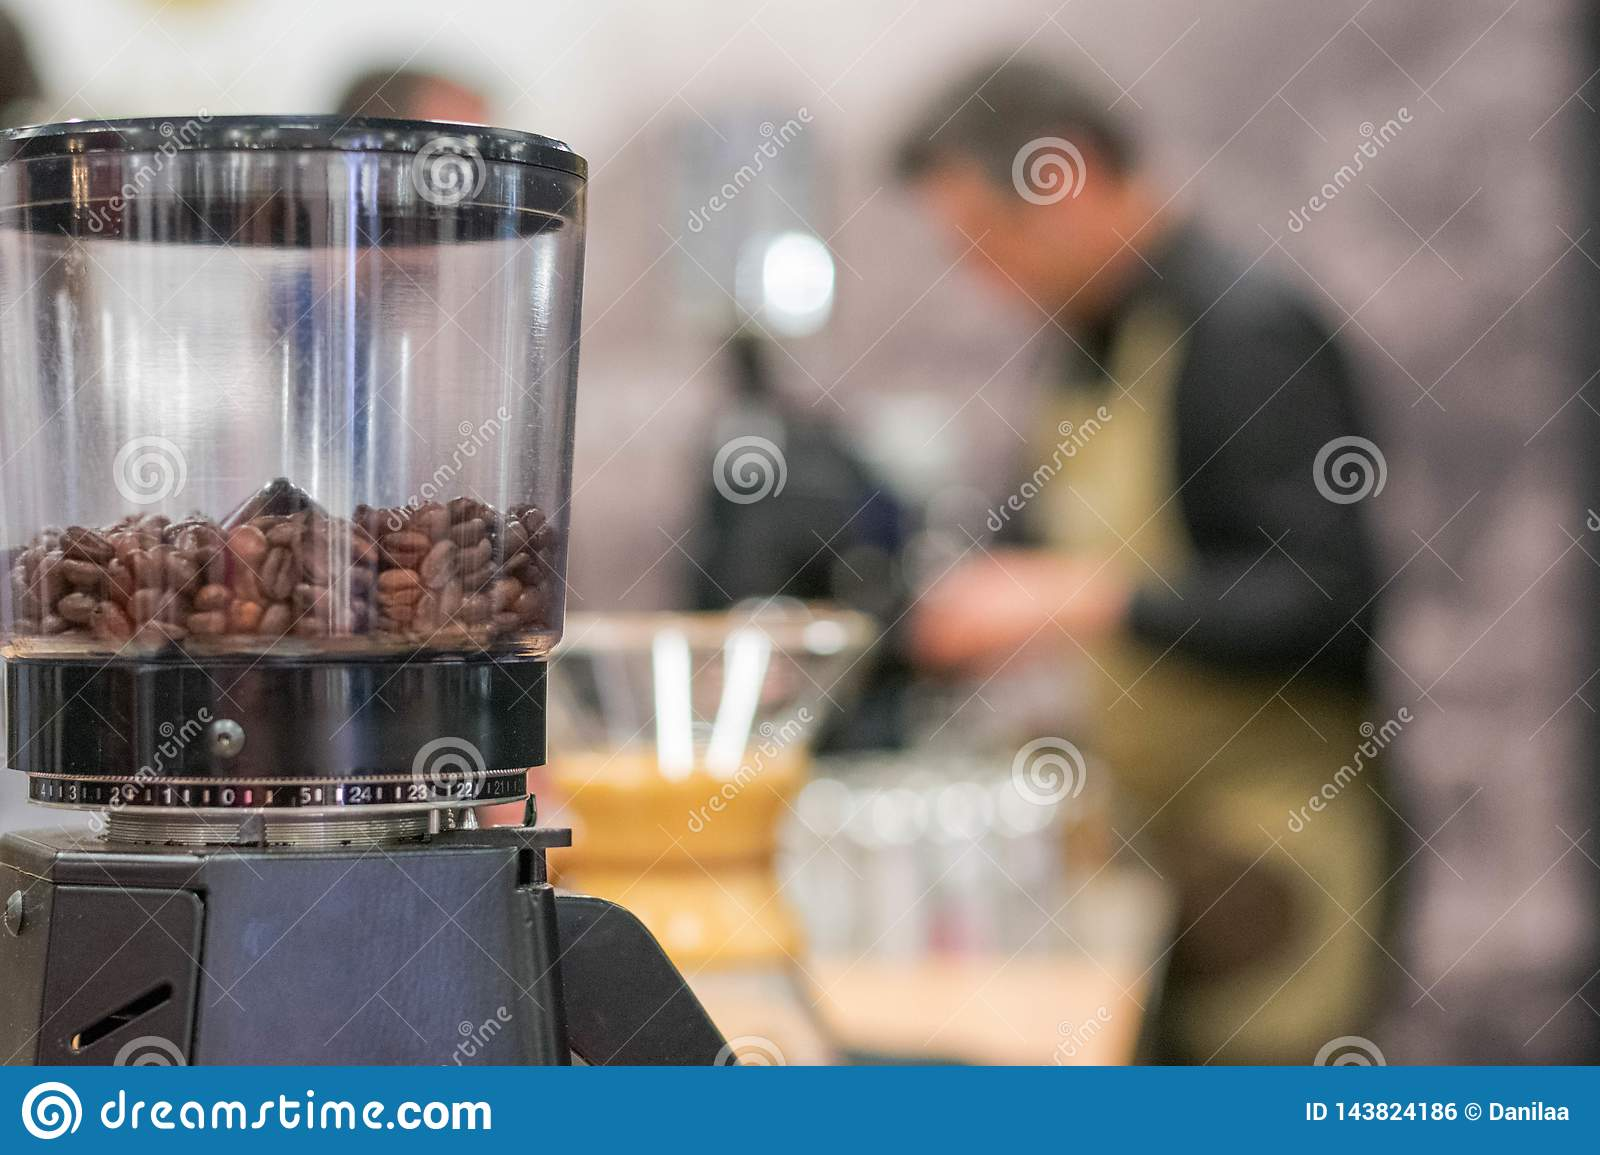 Coffee grinder with blurred barman in the background